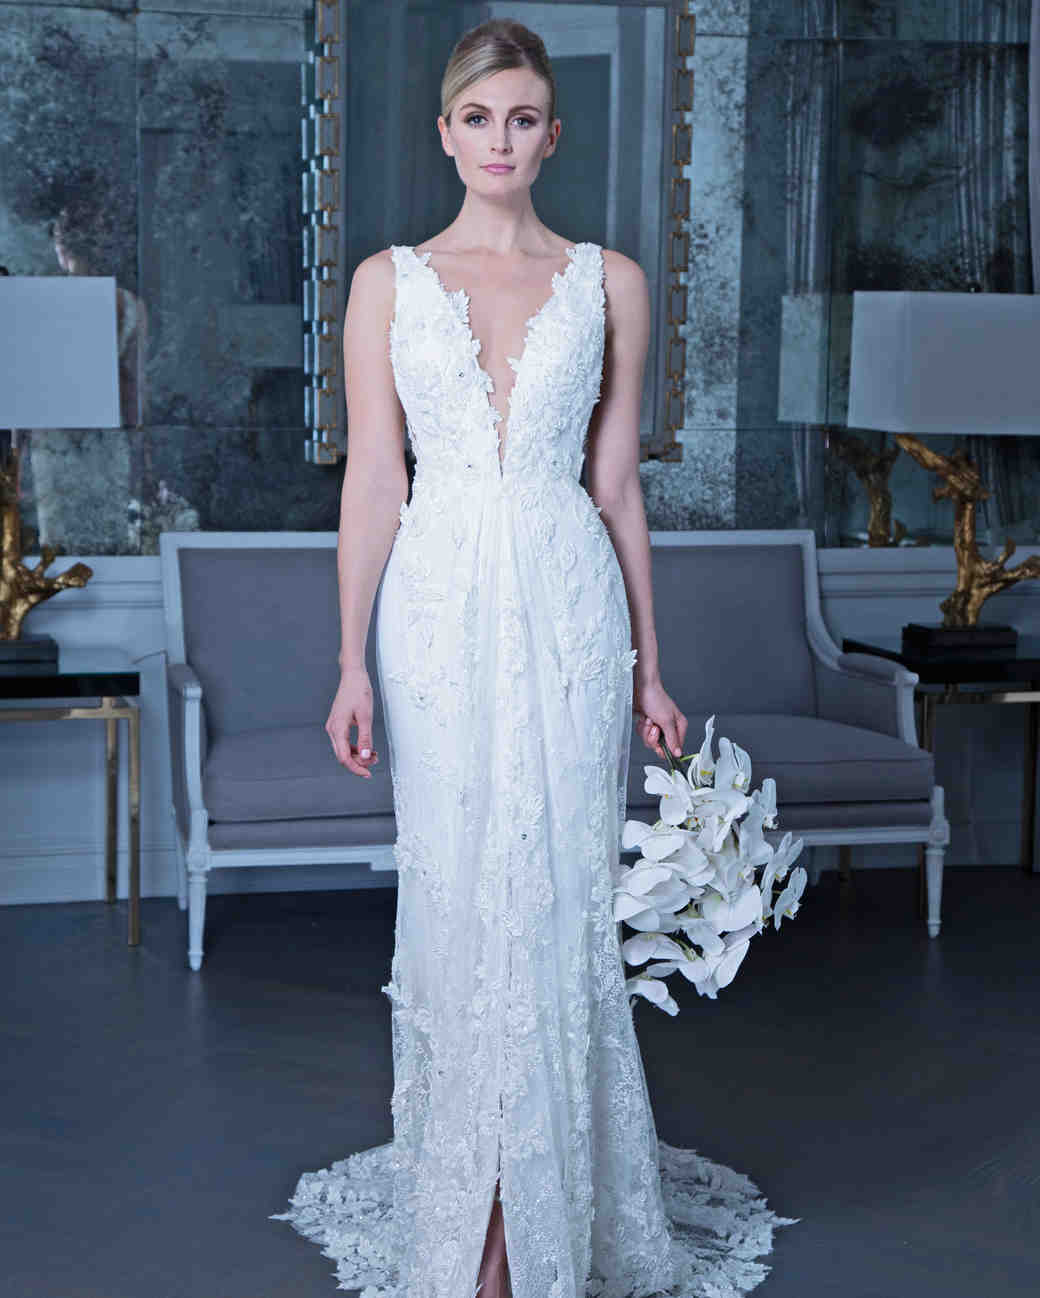 Romona floral applique wedding dress fall 2019